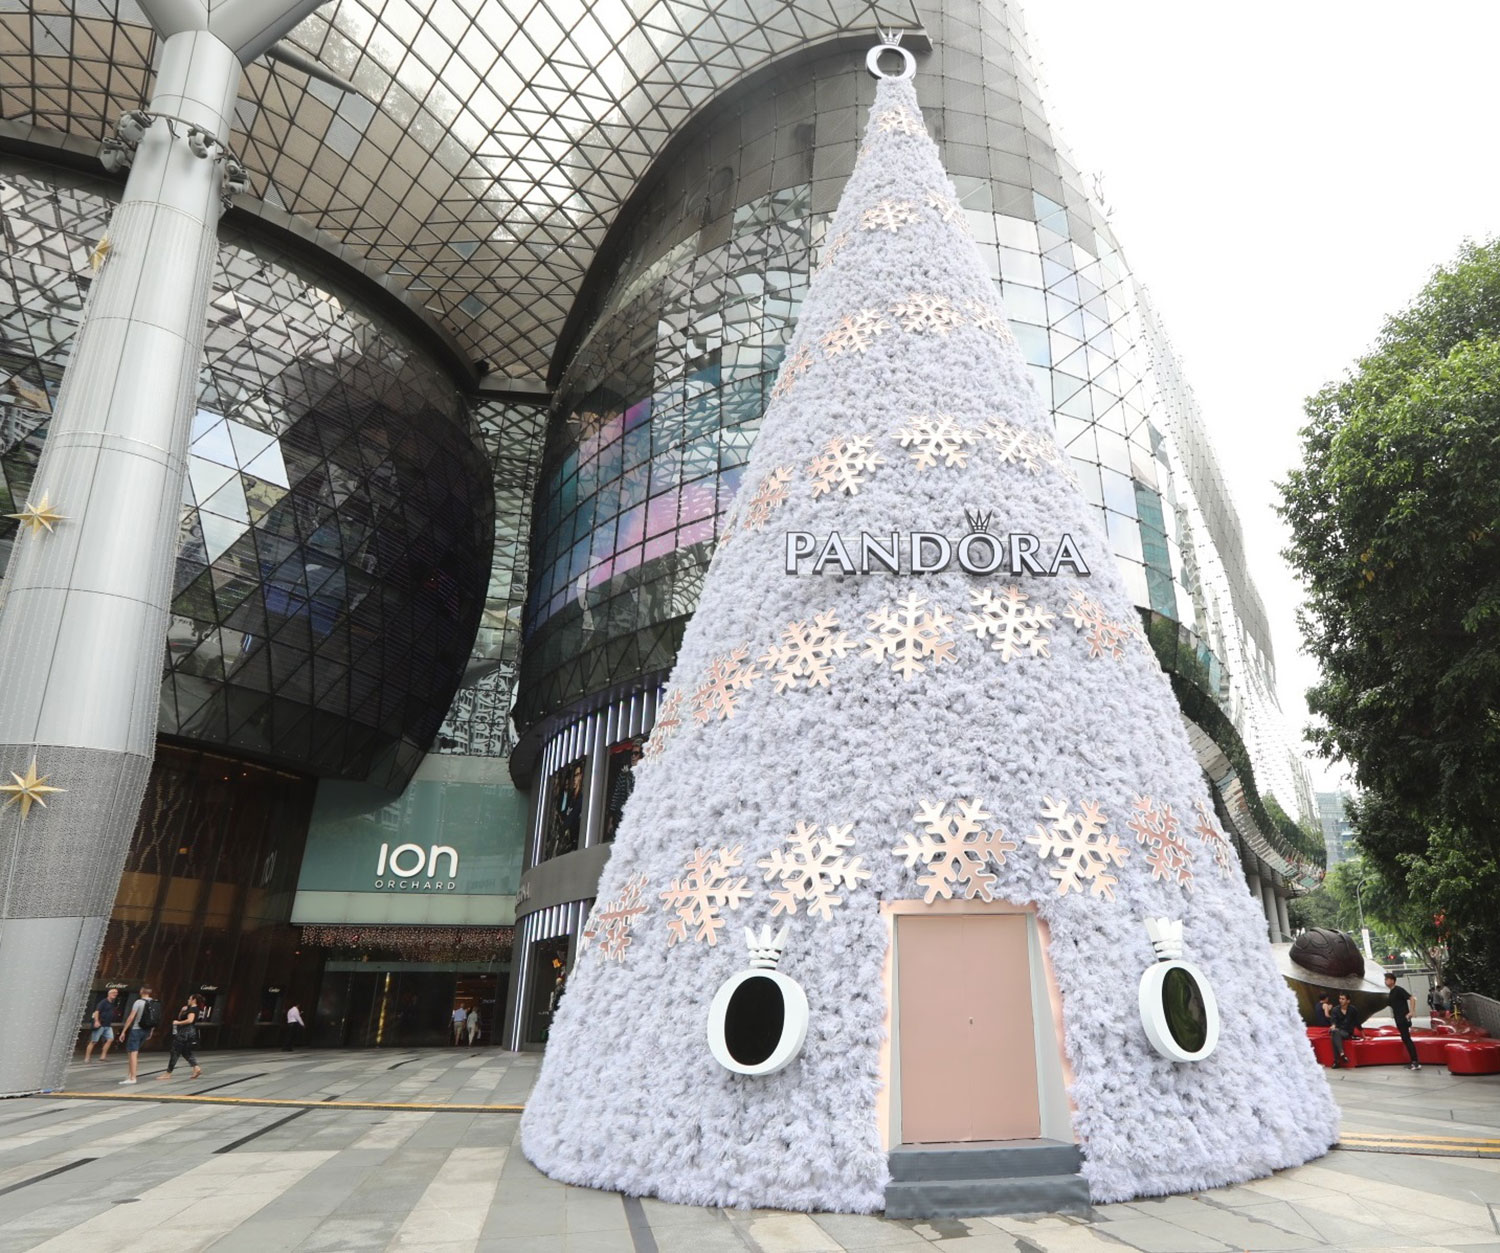 ION Orchard Christmas Tree 2017 decorated by PANDORA